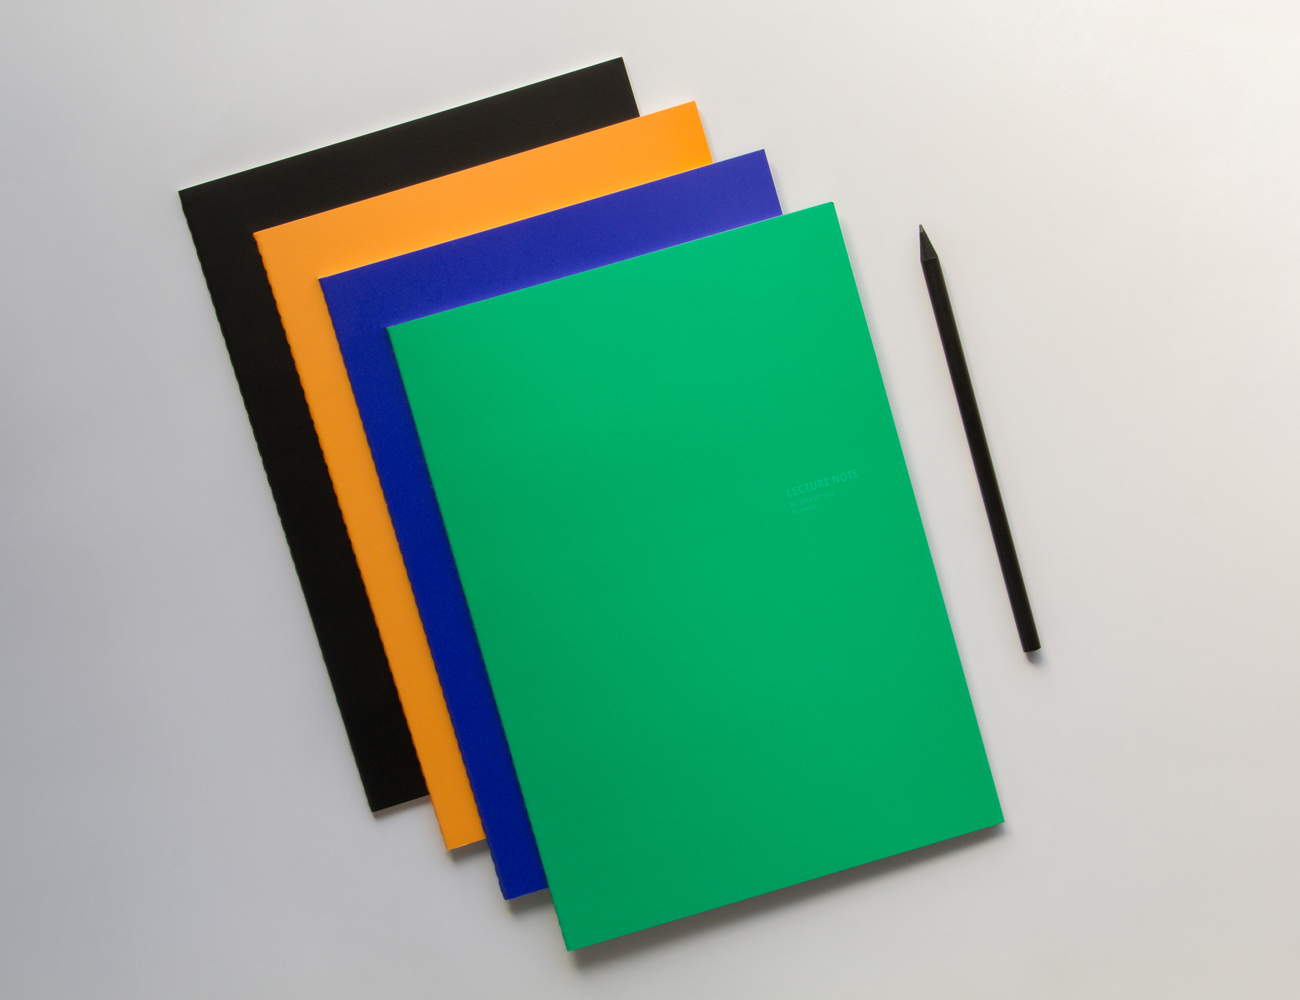 B5 Casual Lecture Note Save Pack X4 【BIG SALE】